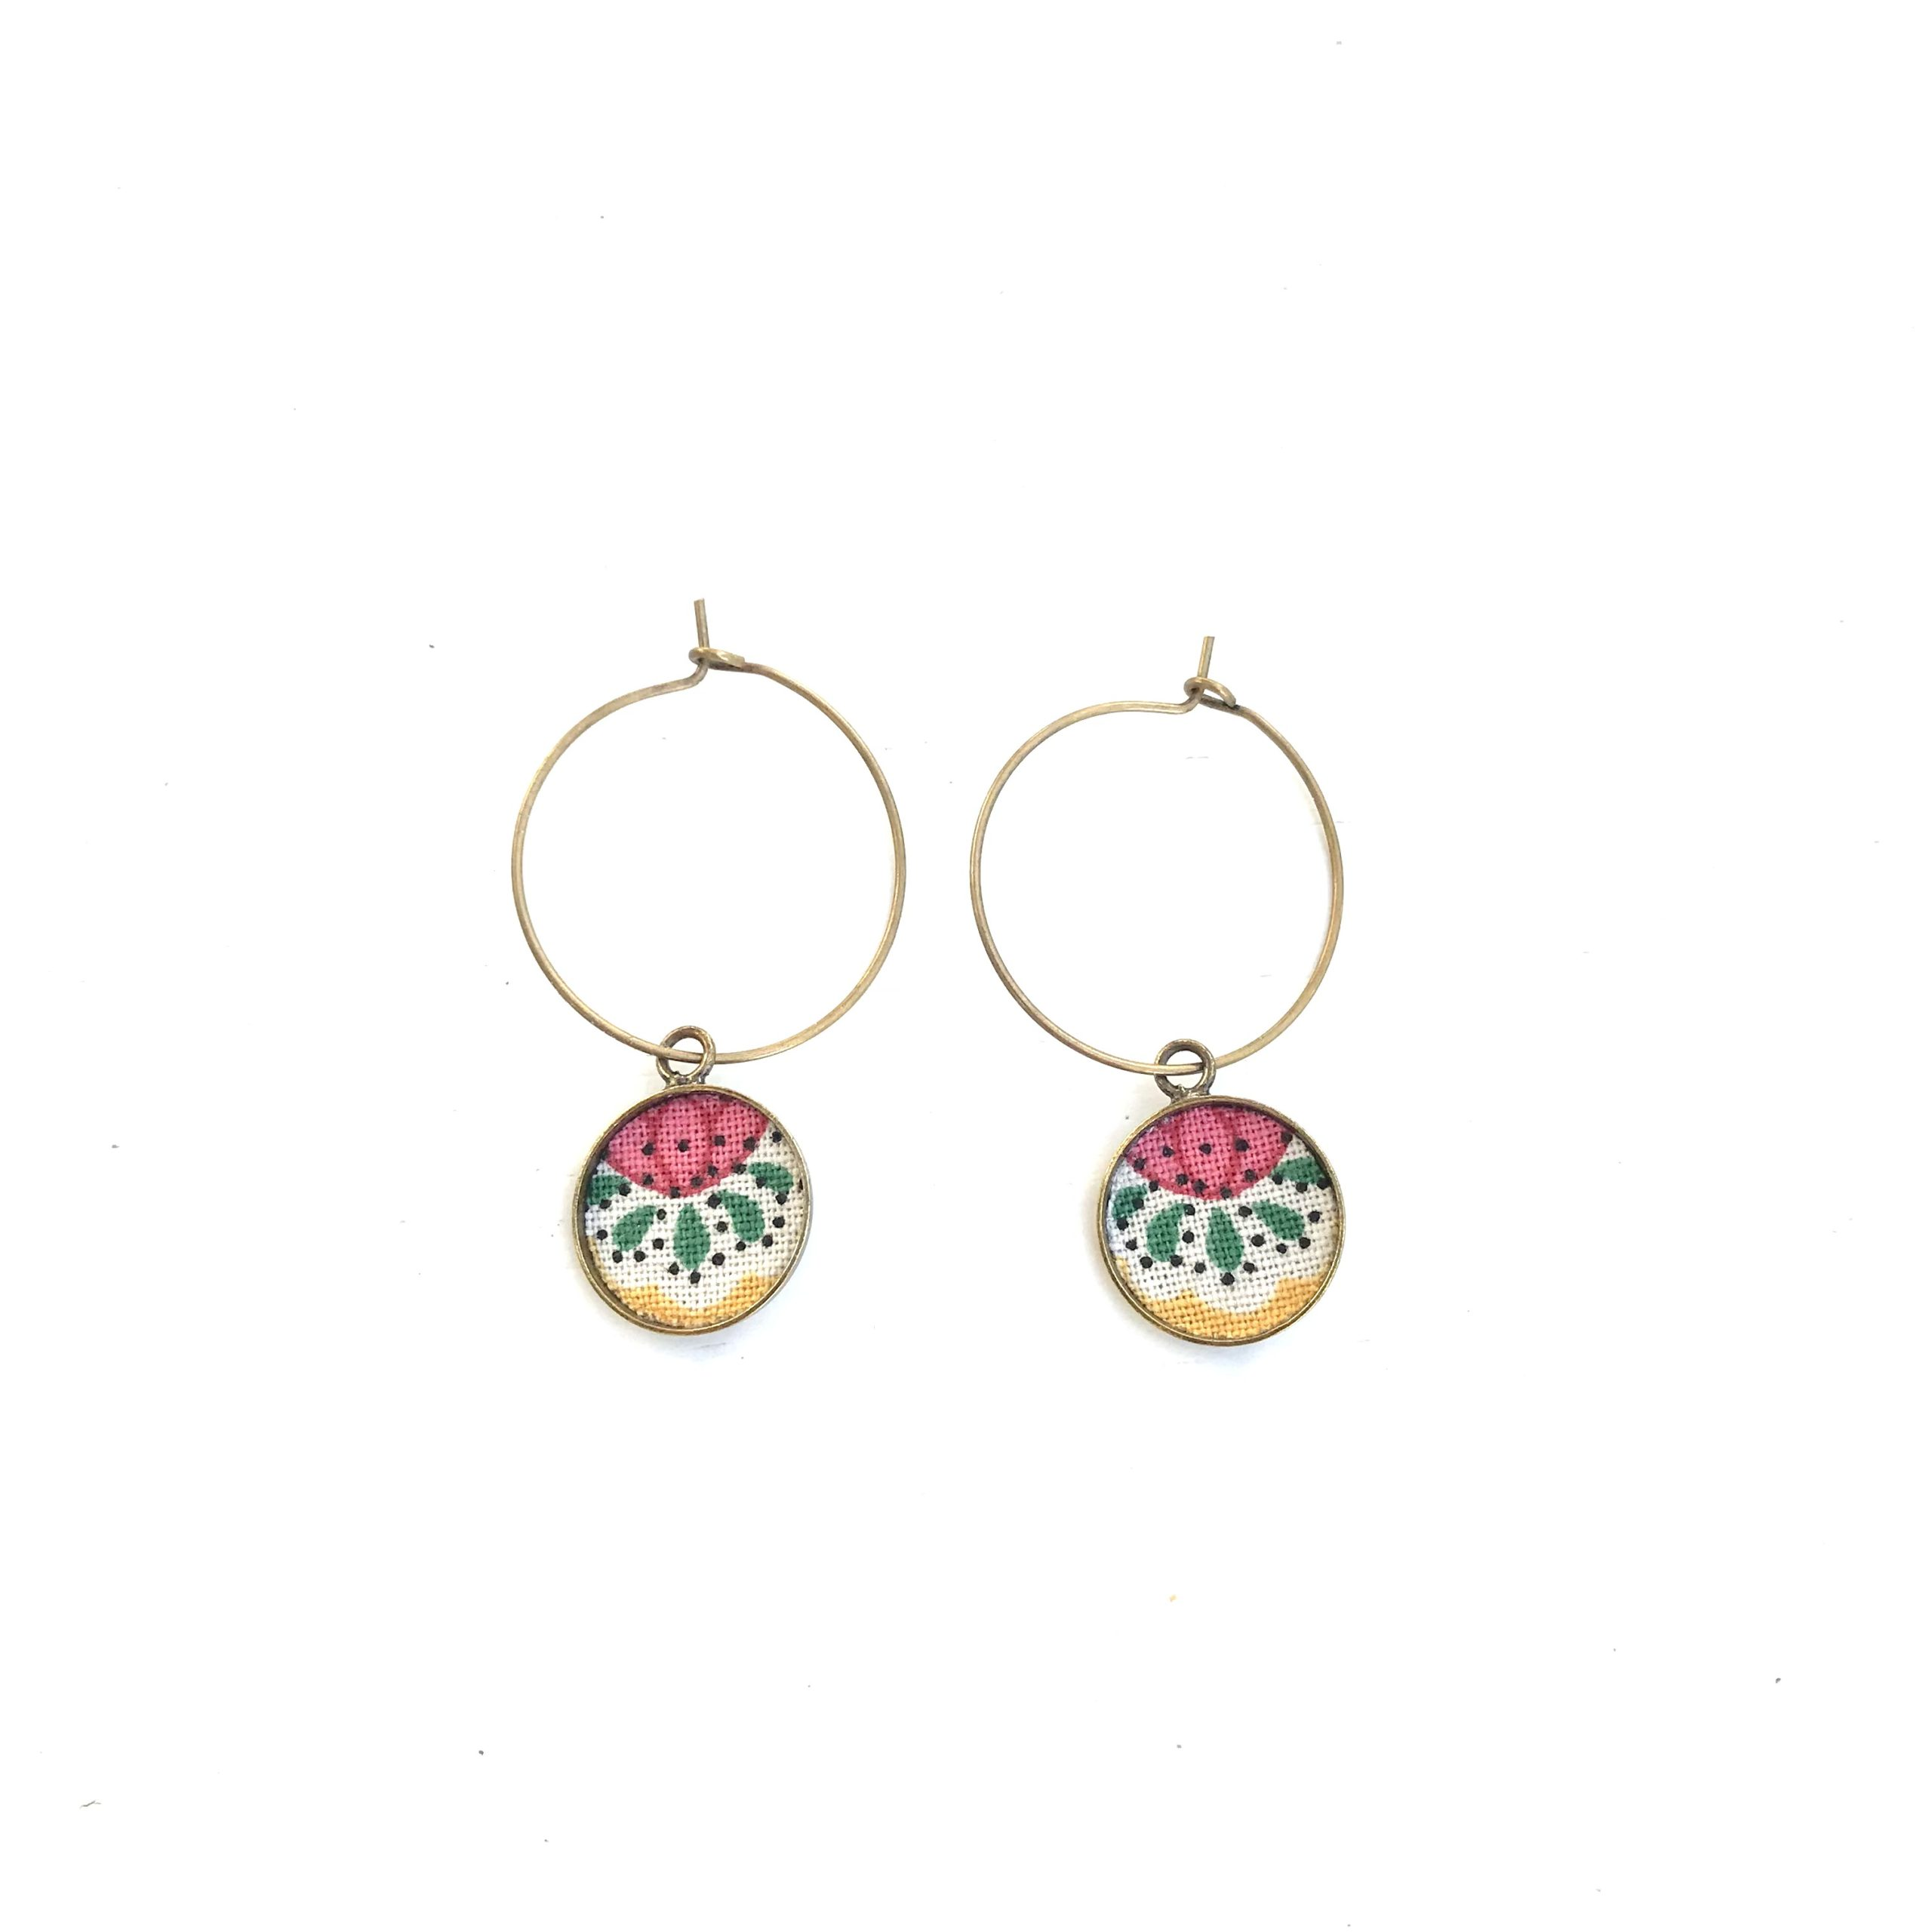 boucles d'oreilles liberty made in france